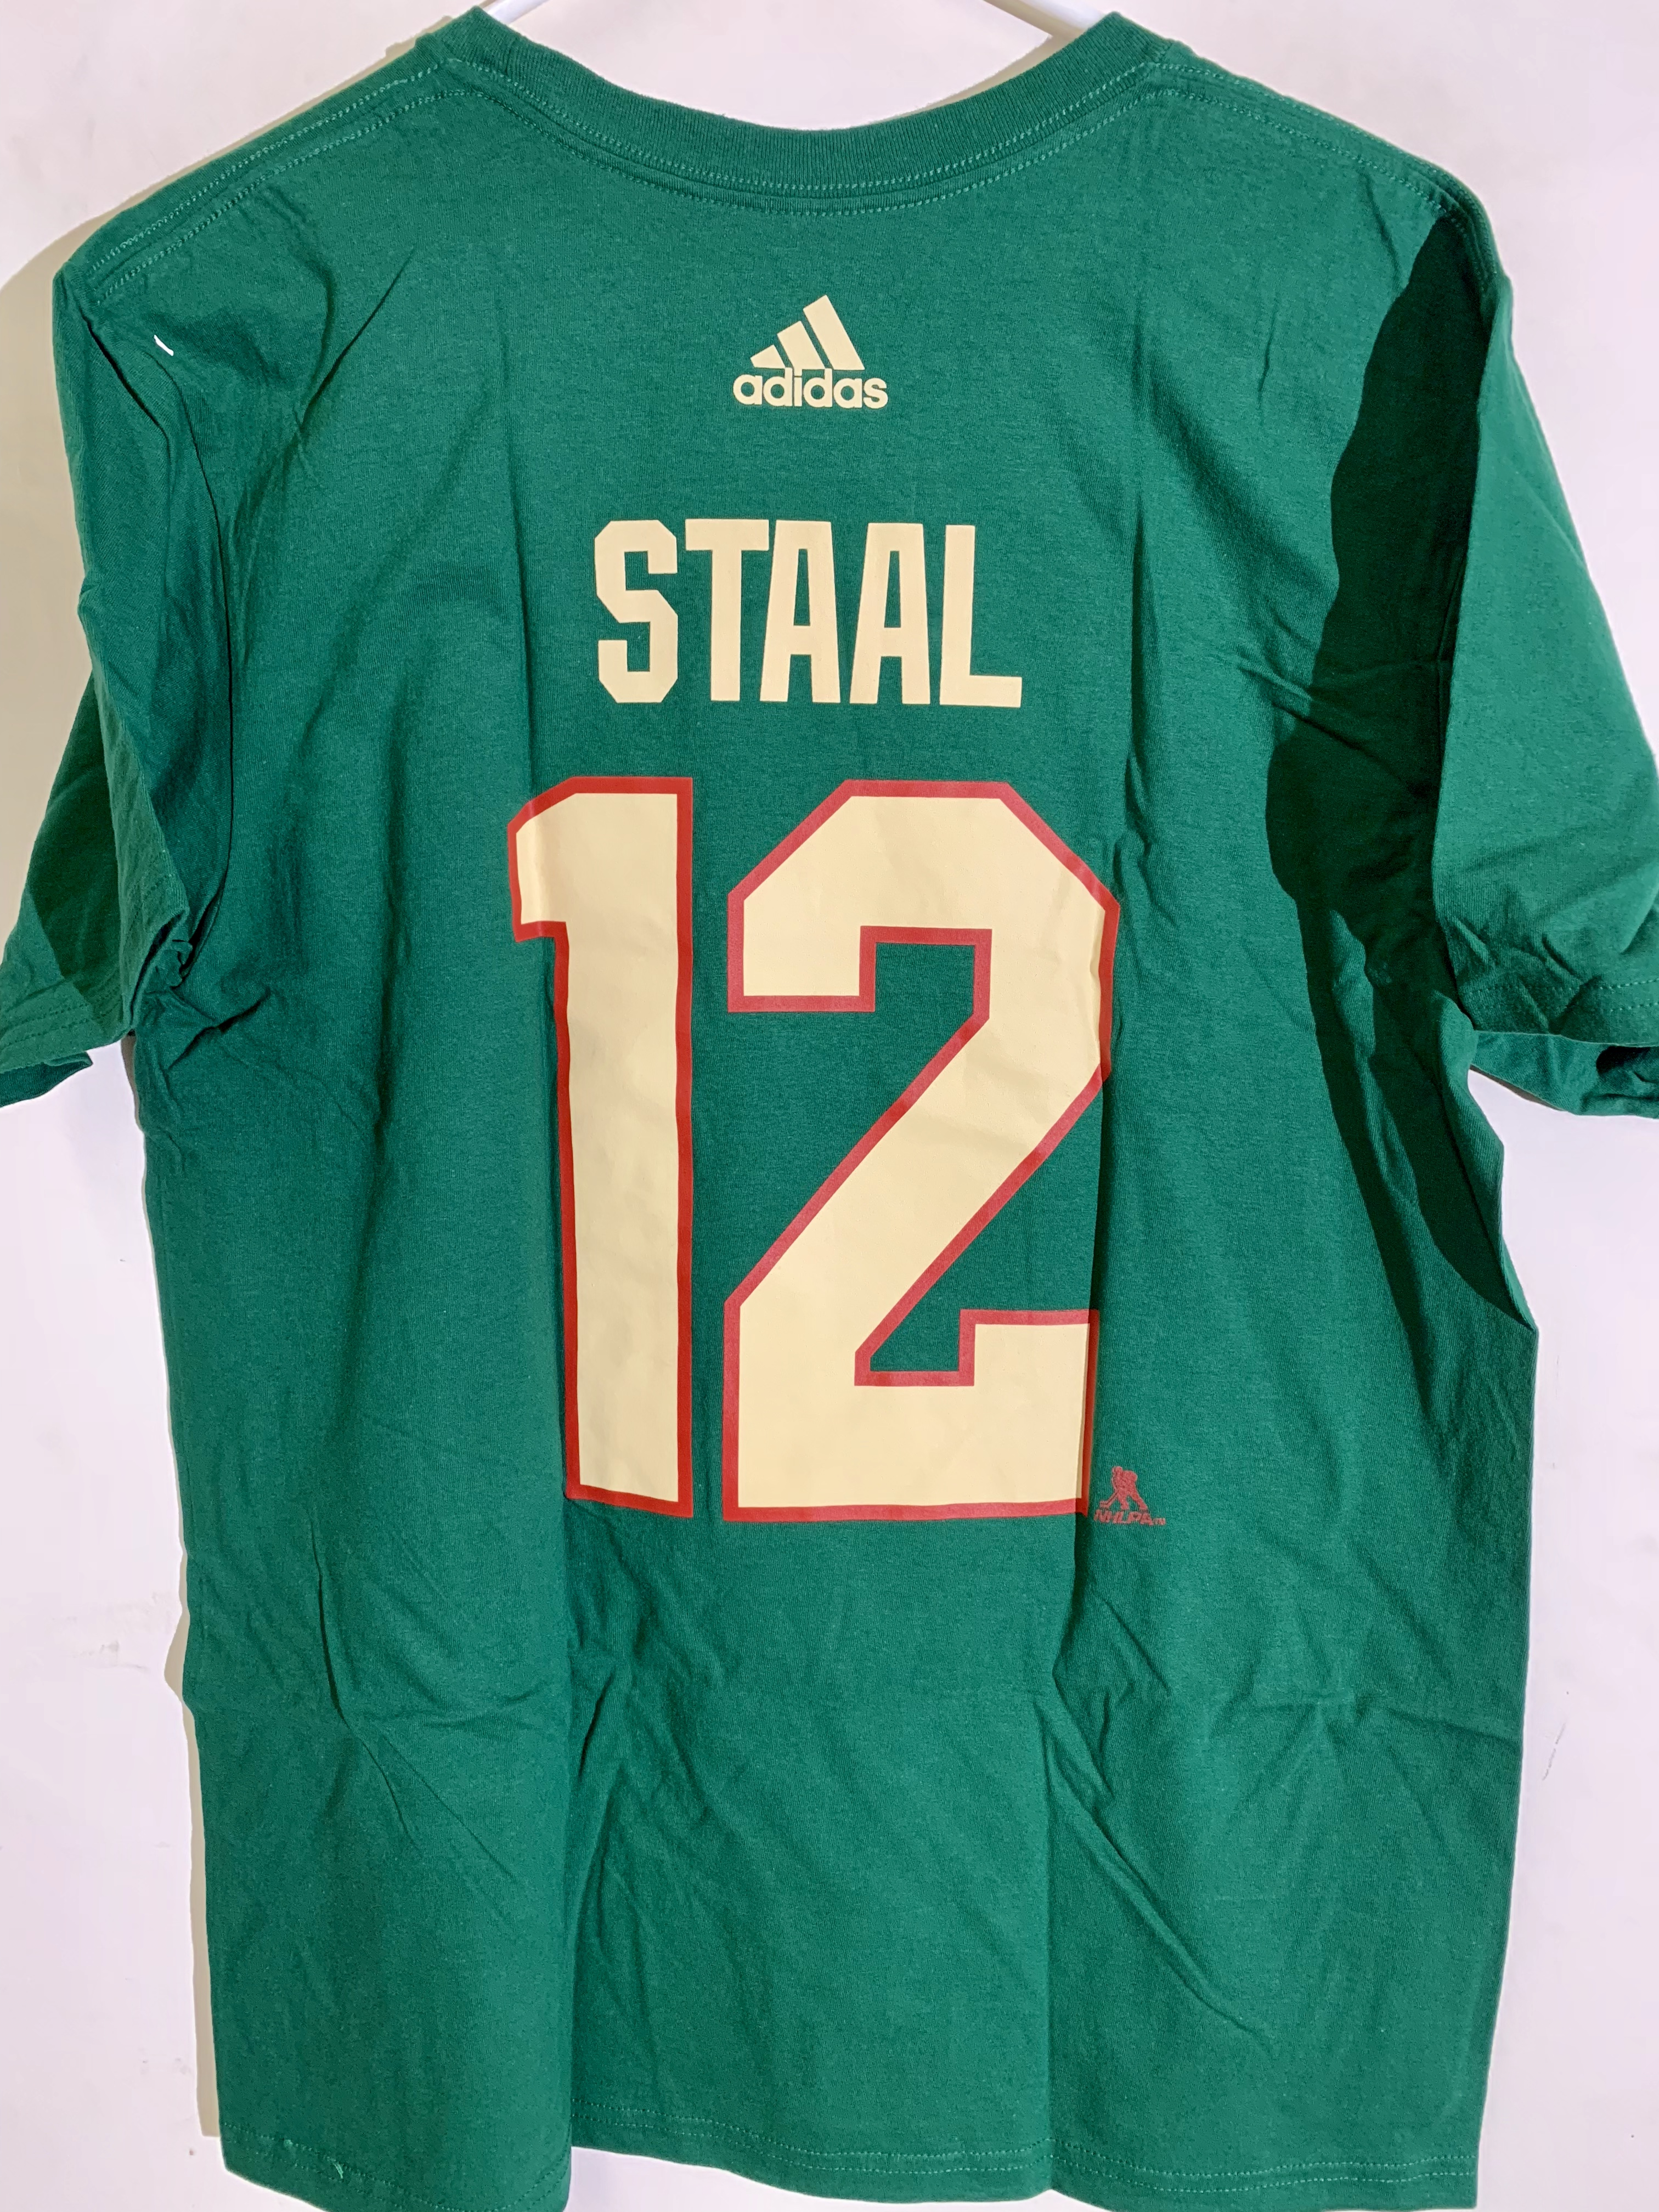 Details about adidas NHL T-Shirt Minnesota Wild Eric Staal Green sz 2X 8f5958ae1